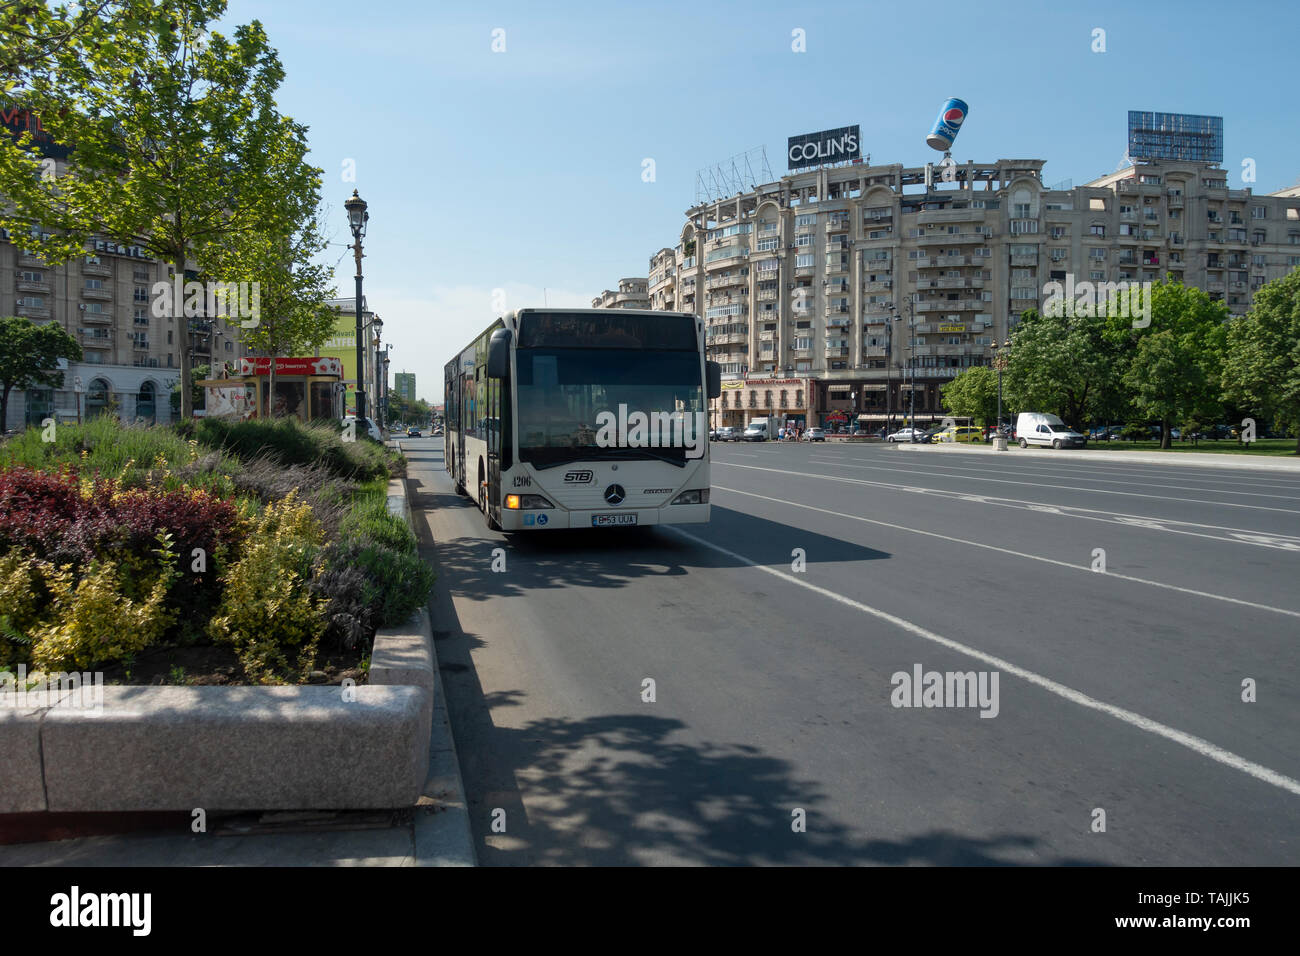 Single decker public STB bus on the south-east corner of Piața Unirii (Union Square / Unification Square)  in central Bucharest/ București,  Romania Stock Photo